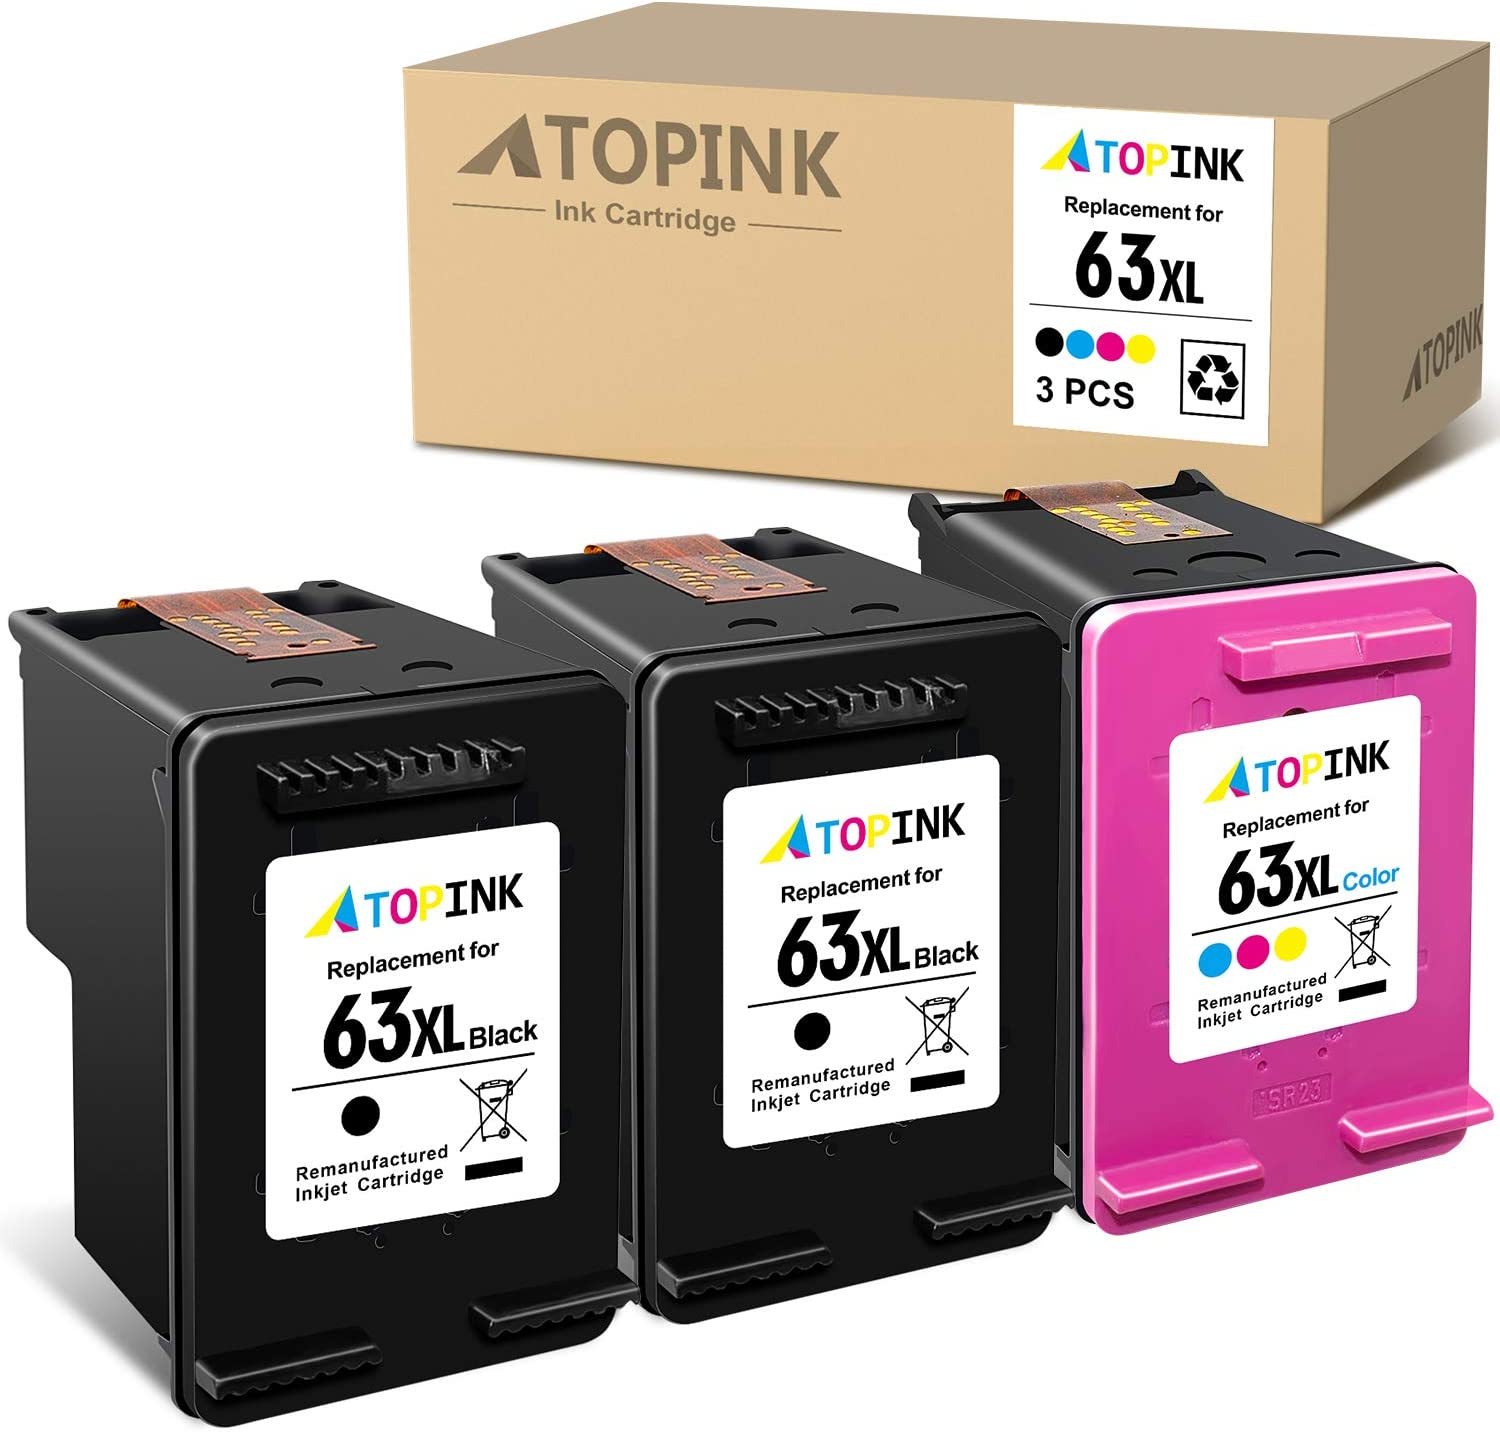 ATOPINK Remanufactured Ink Cartridge 63 XL Replacement for HP 63XL Work with DeskJet 1112 1110 2130 3632 OfficeJet 5255 3830 3834 4650 4652 4655 5252 5258 Envy 4520 4512 (2 Black, 1 Tri-Color) 3-Pack